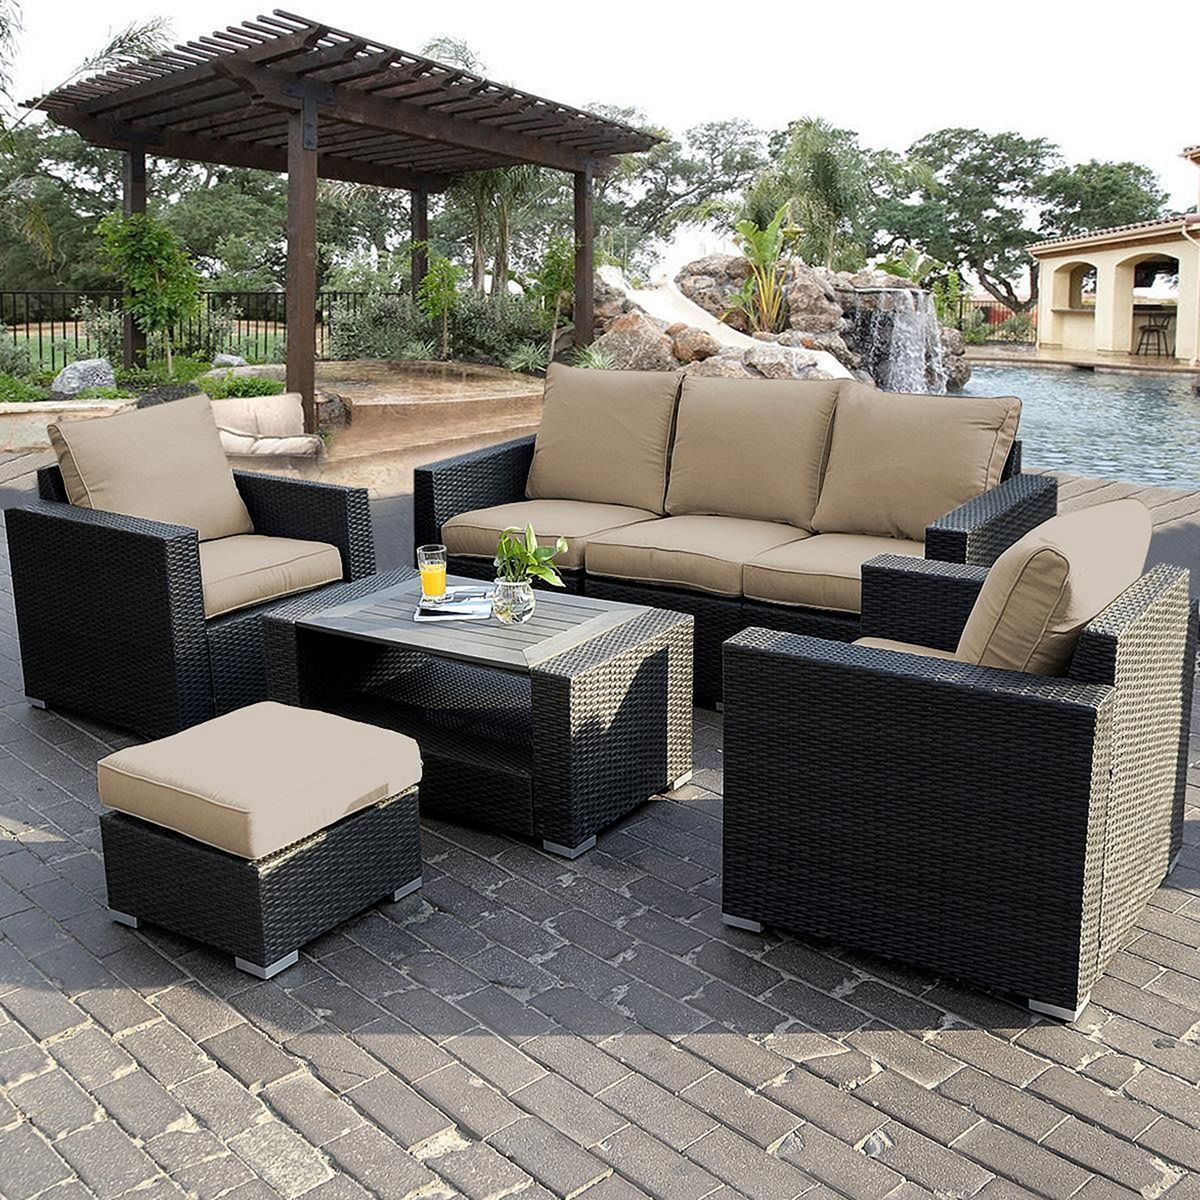 17 Cozy Home Outdoor Sofa Ideas For Relaxing Place Sectional